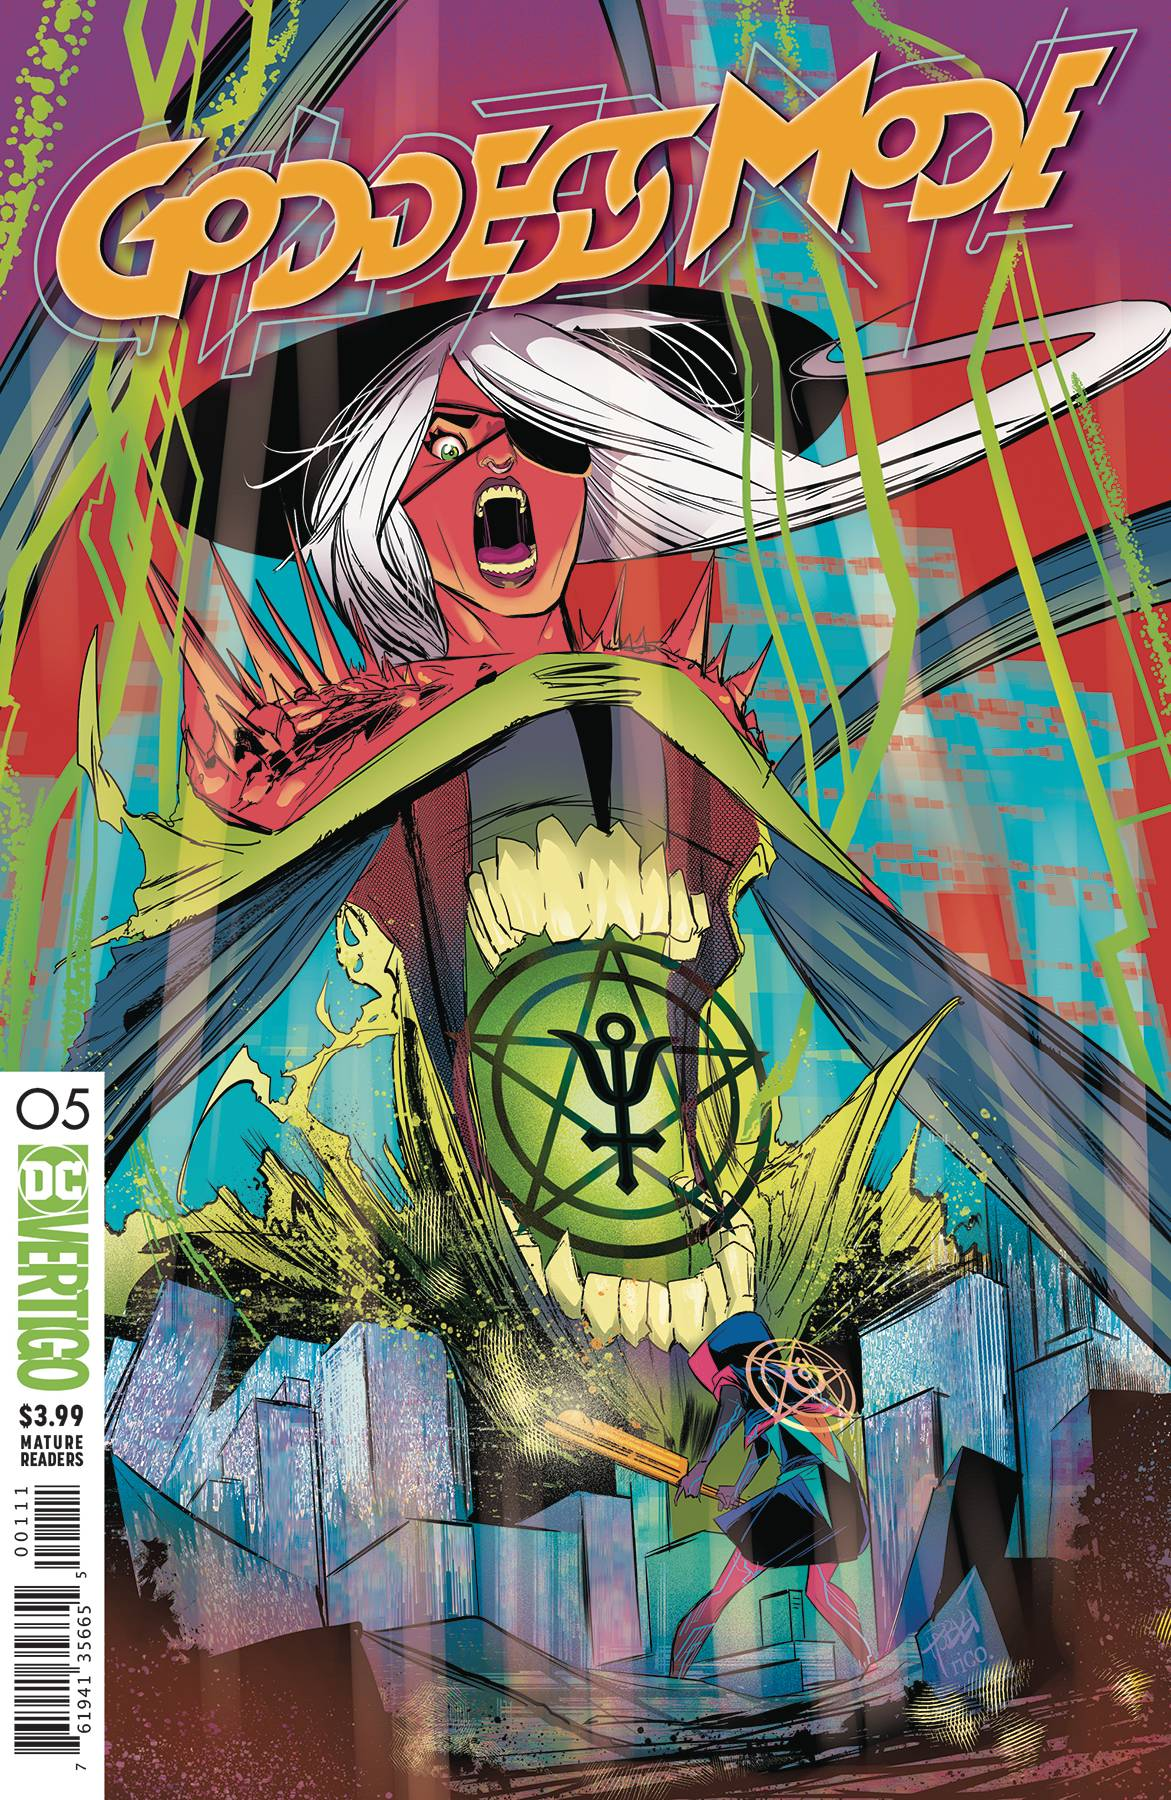 GODDESS MODE #5 - The deadly Daemon/human hybrid known as Antimony has been a constant threat to Cassandra ever since she first entered the secret world of Azoth. But the Tall Poppies are going to learn just how wrong they were about this most mysterious foe when DC Vertigo's cyberpunk saga travels back to the origins of Azoth itself…and who really built it…and why.